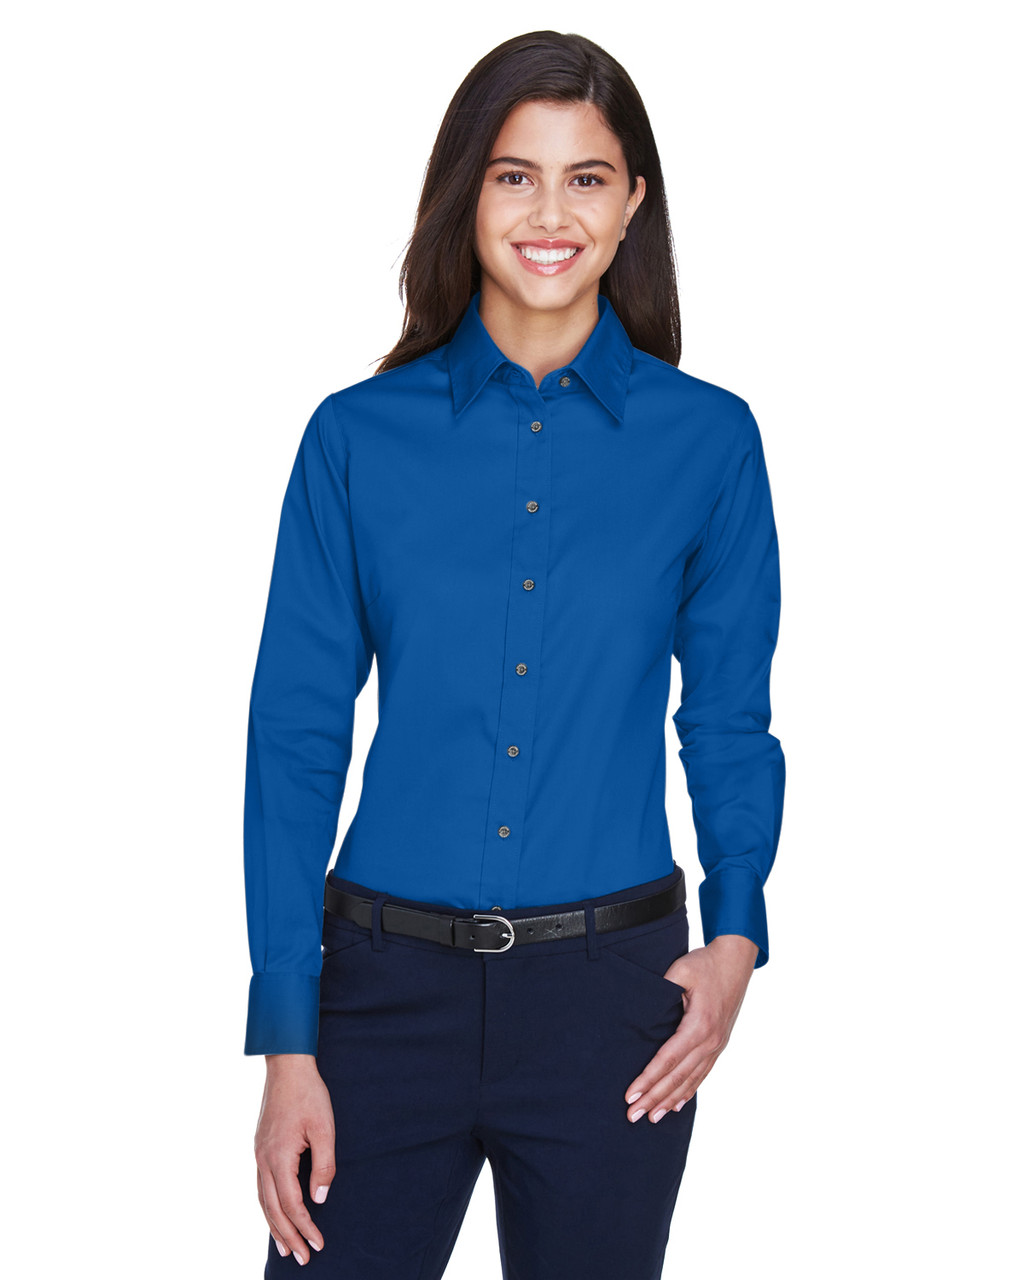 French Blue - M500W Harriton Easy Blend Long-Sleeve Twill Shirt with Stain-Release | BlankClothing.ca